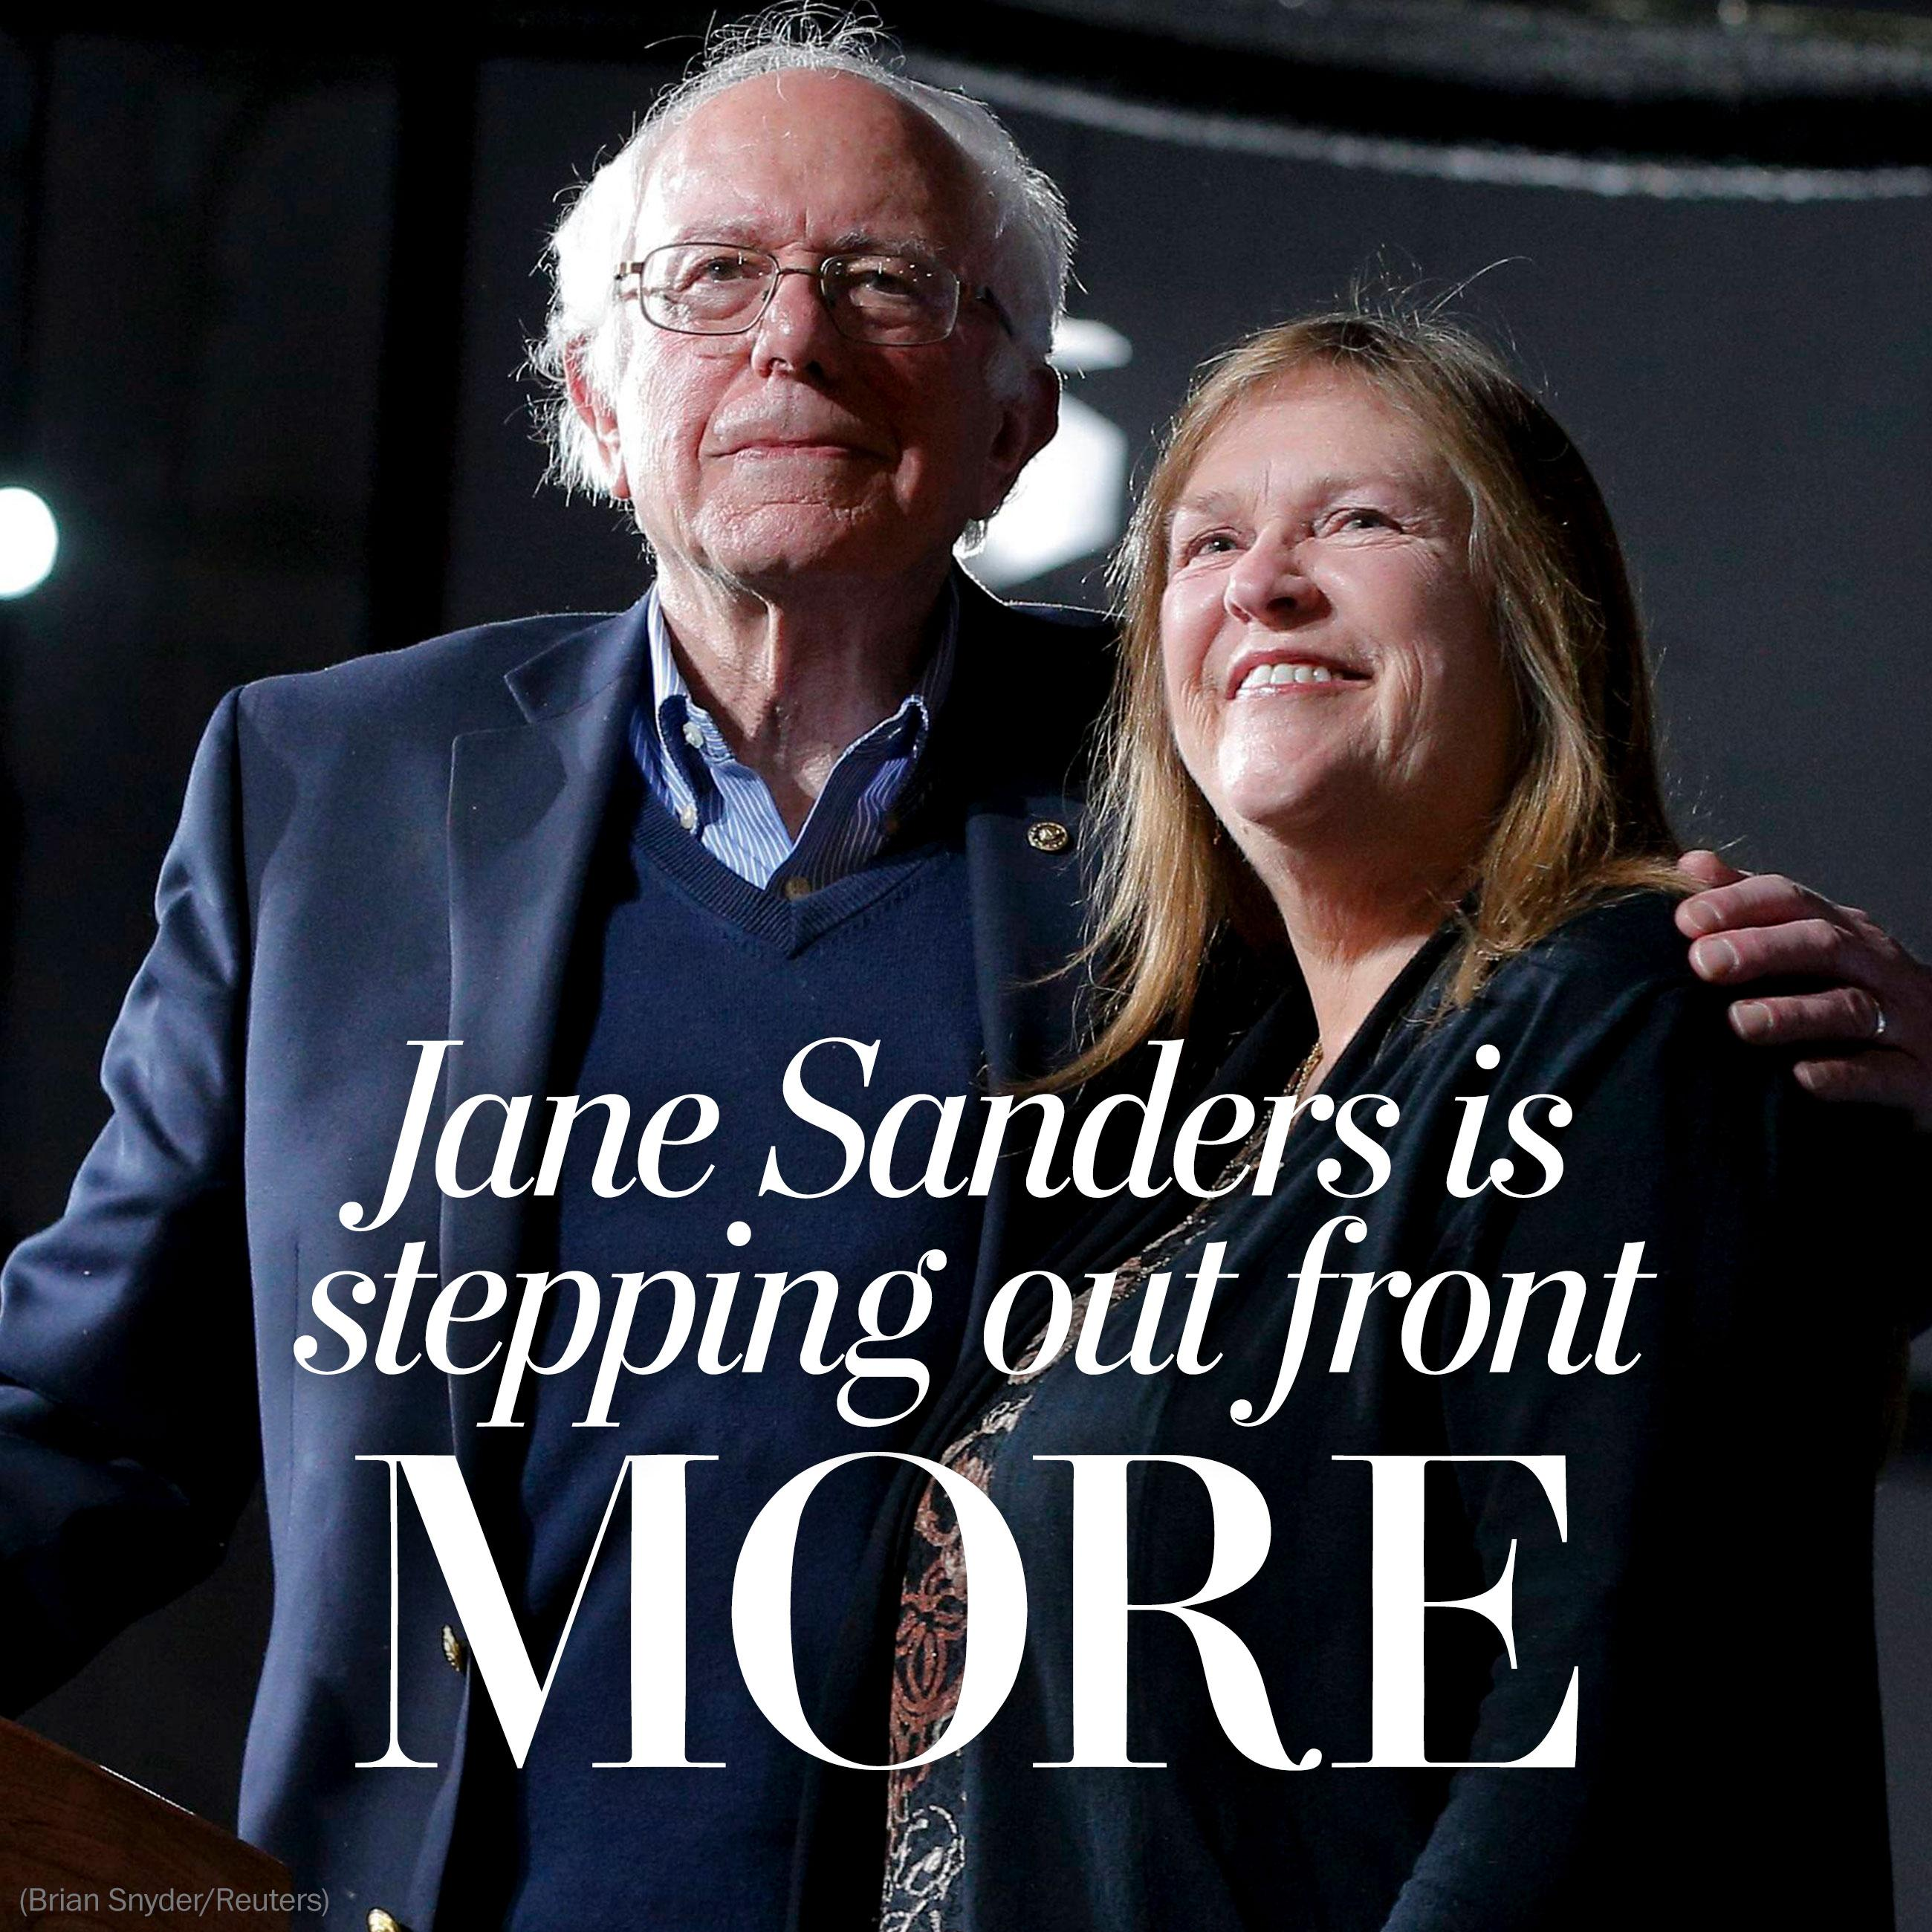 For Jane Sanders, a more visible role on the presidential campaign trail